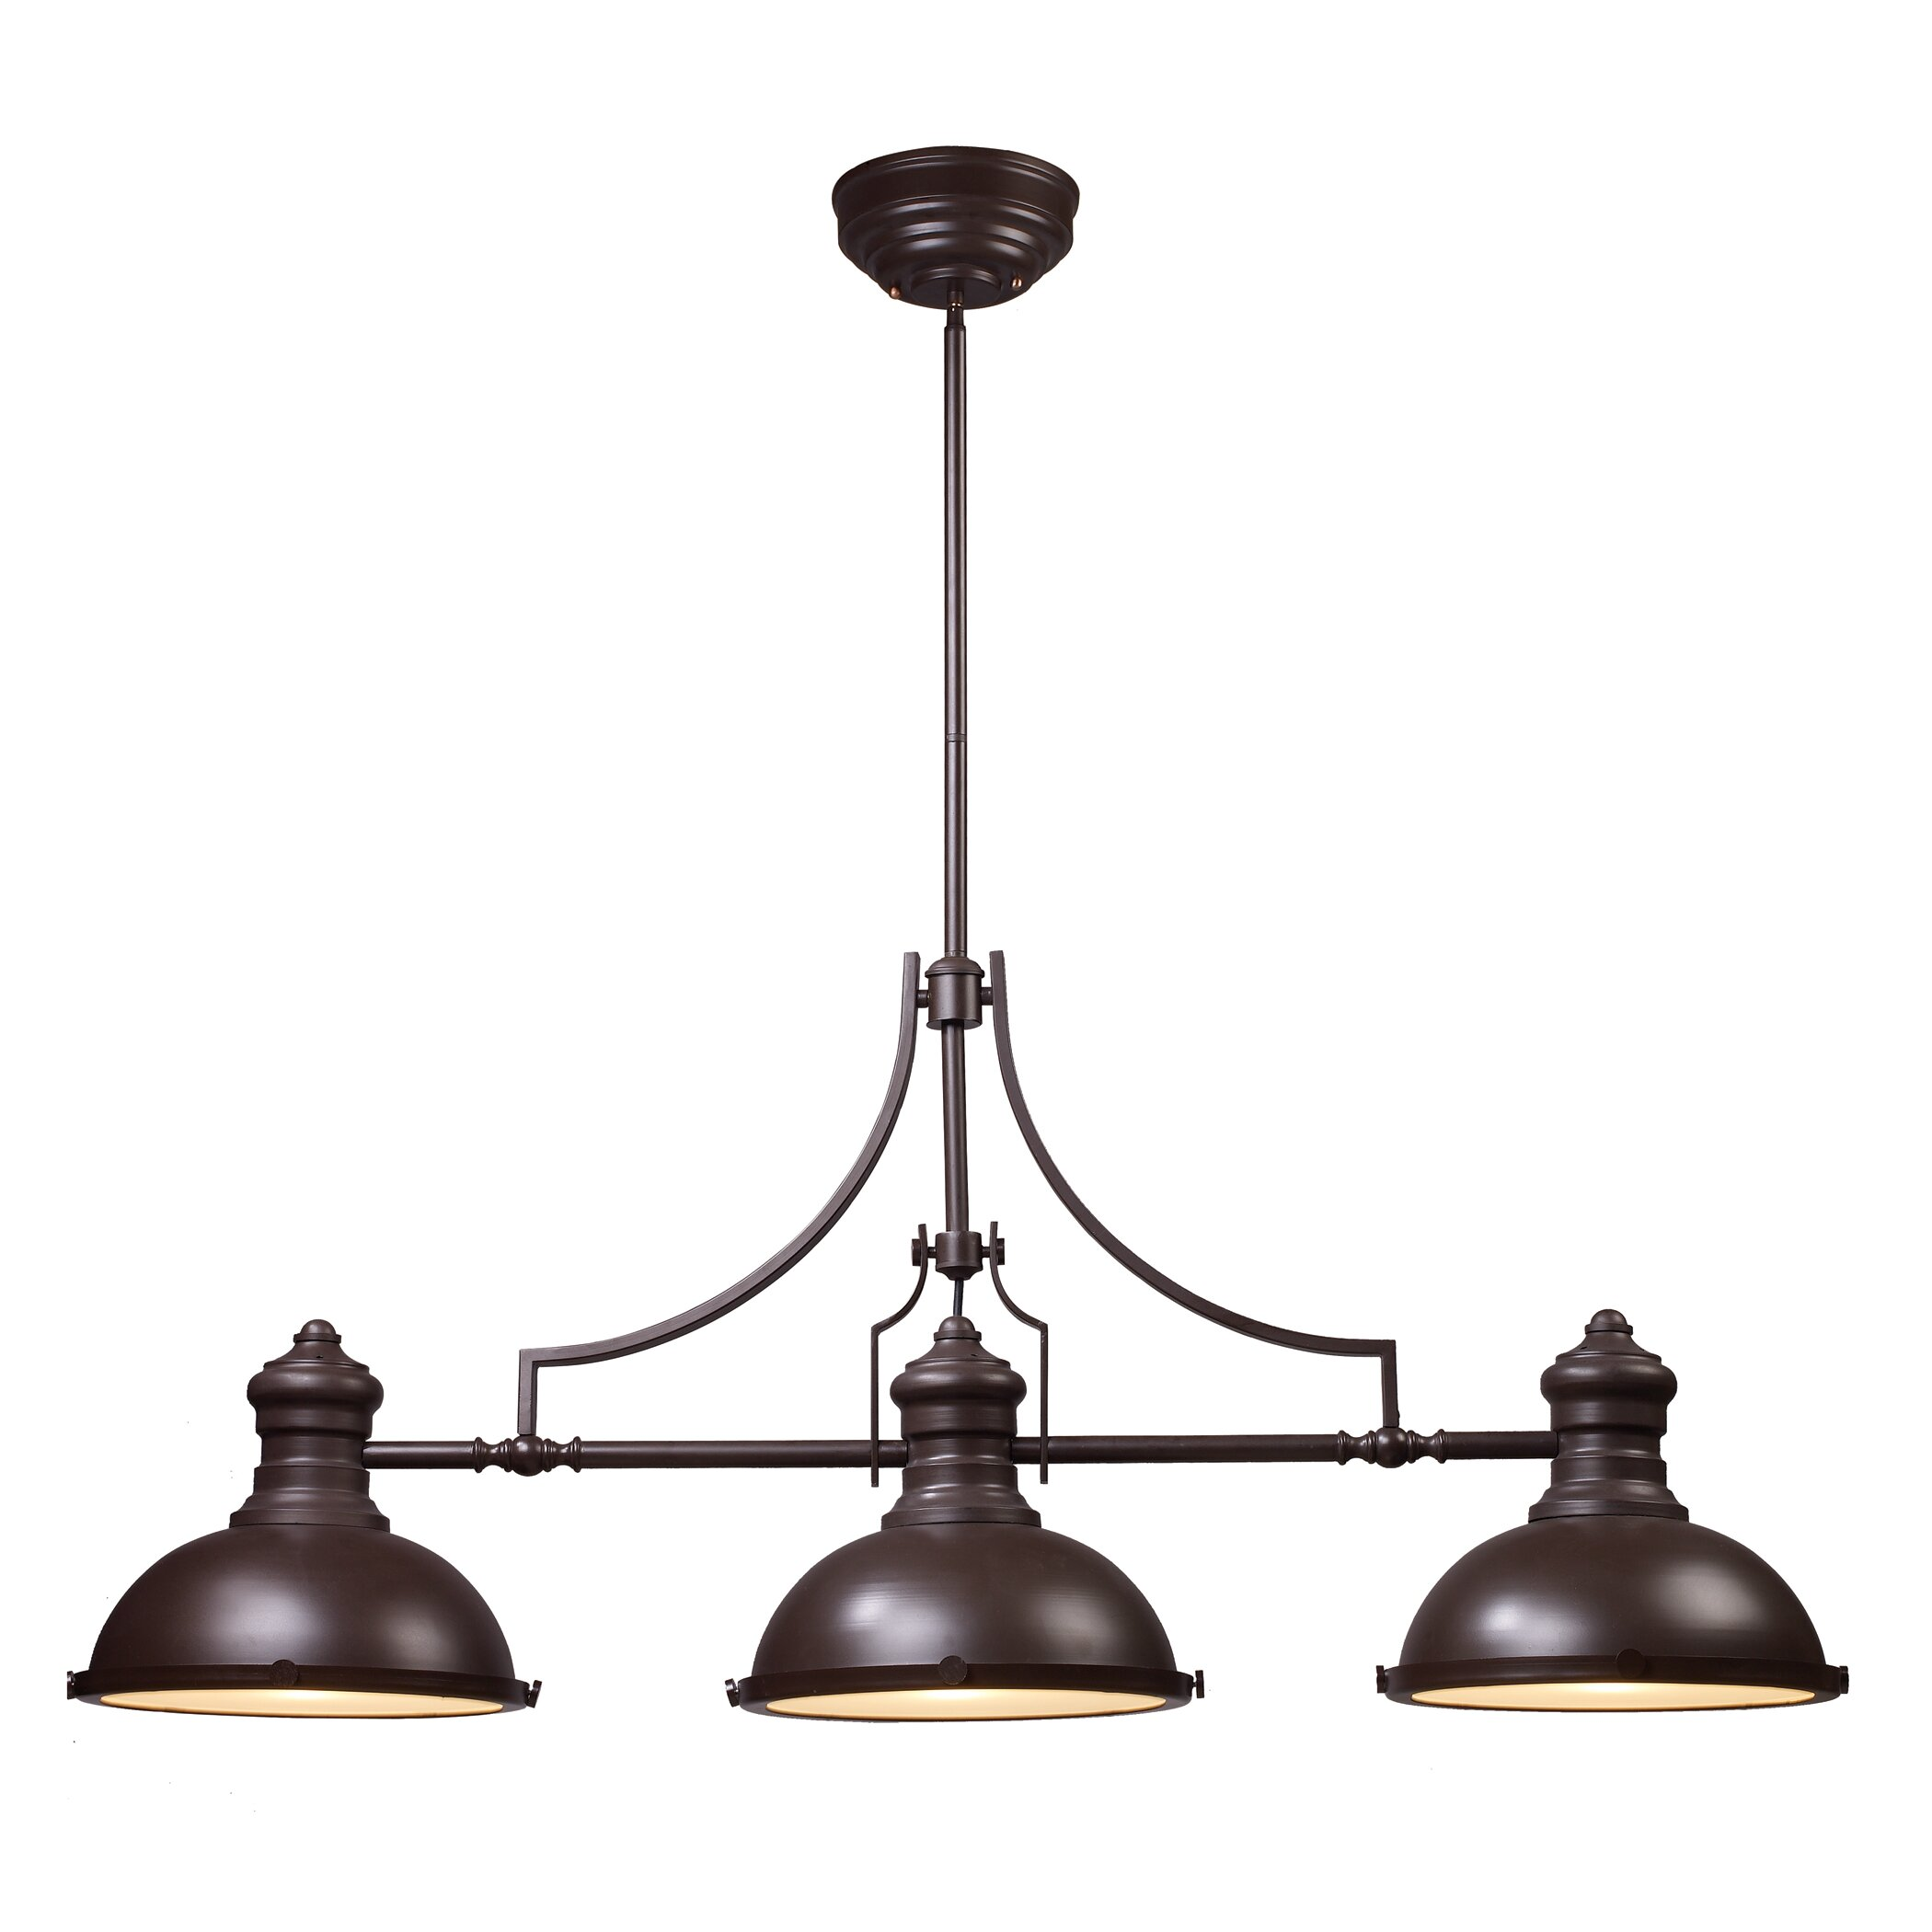 Landmark Lighting Chadwick 3 Light Kitchen Island Pendant